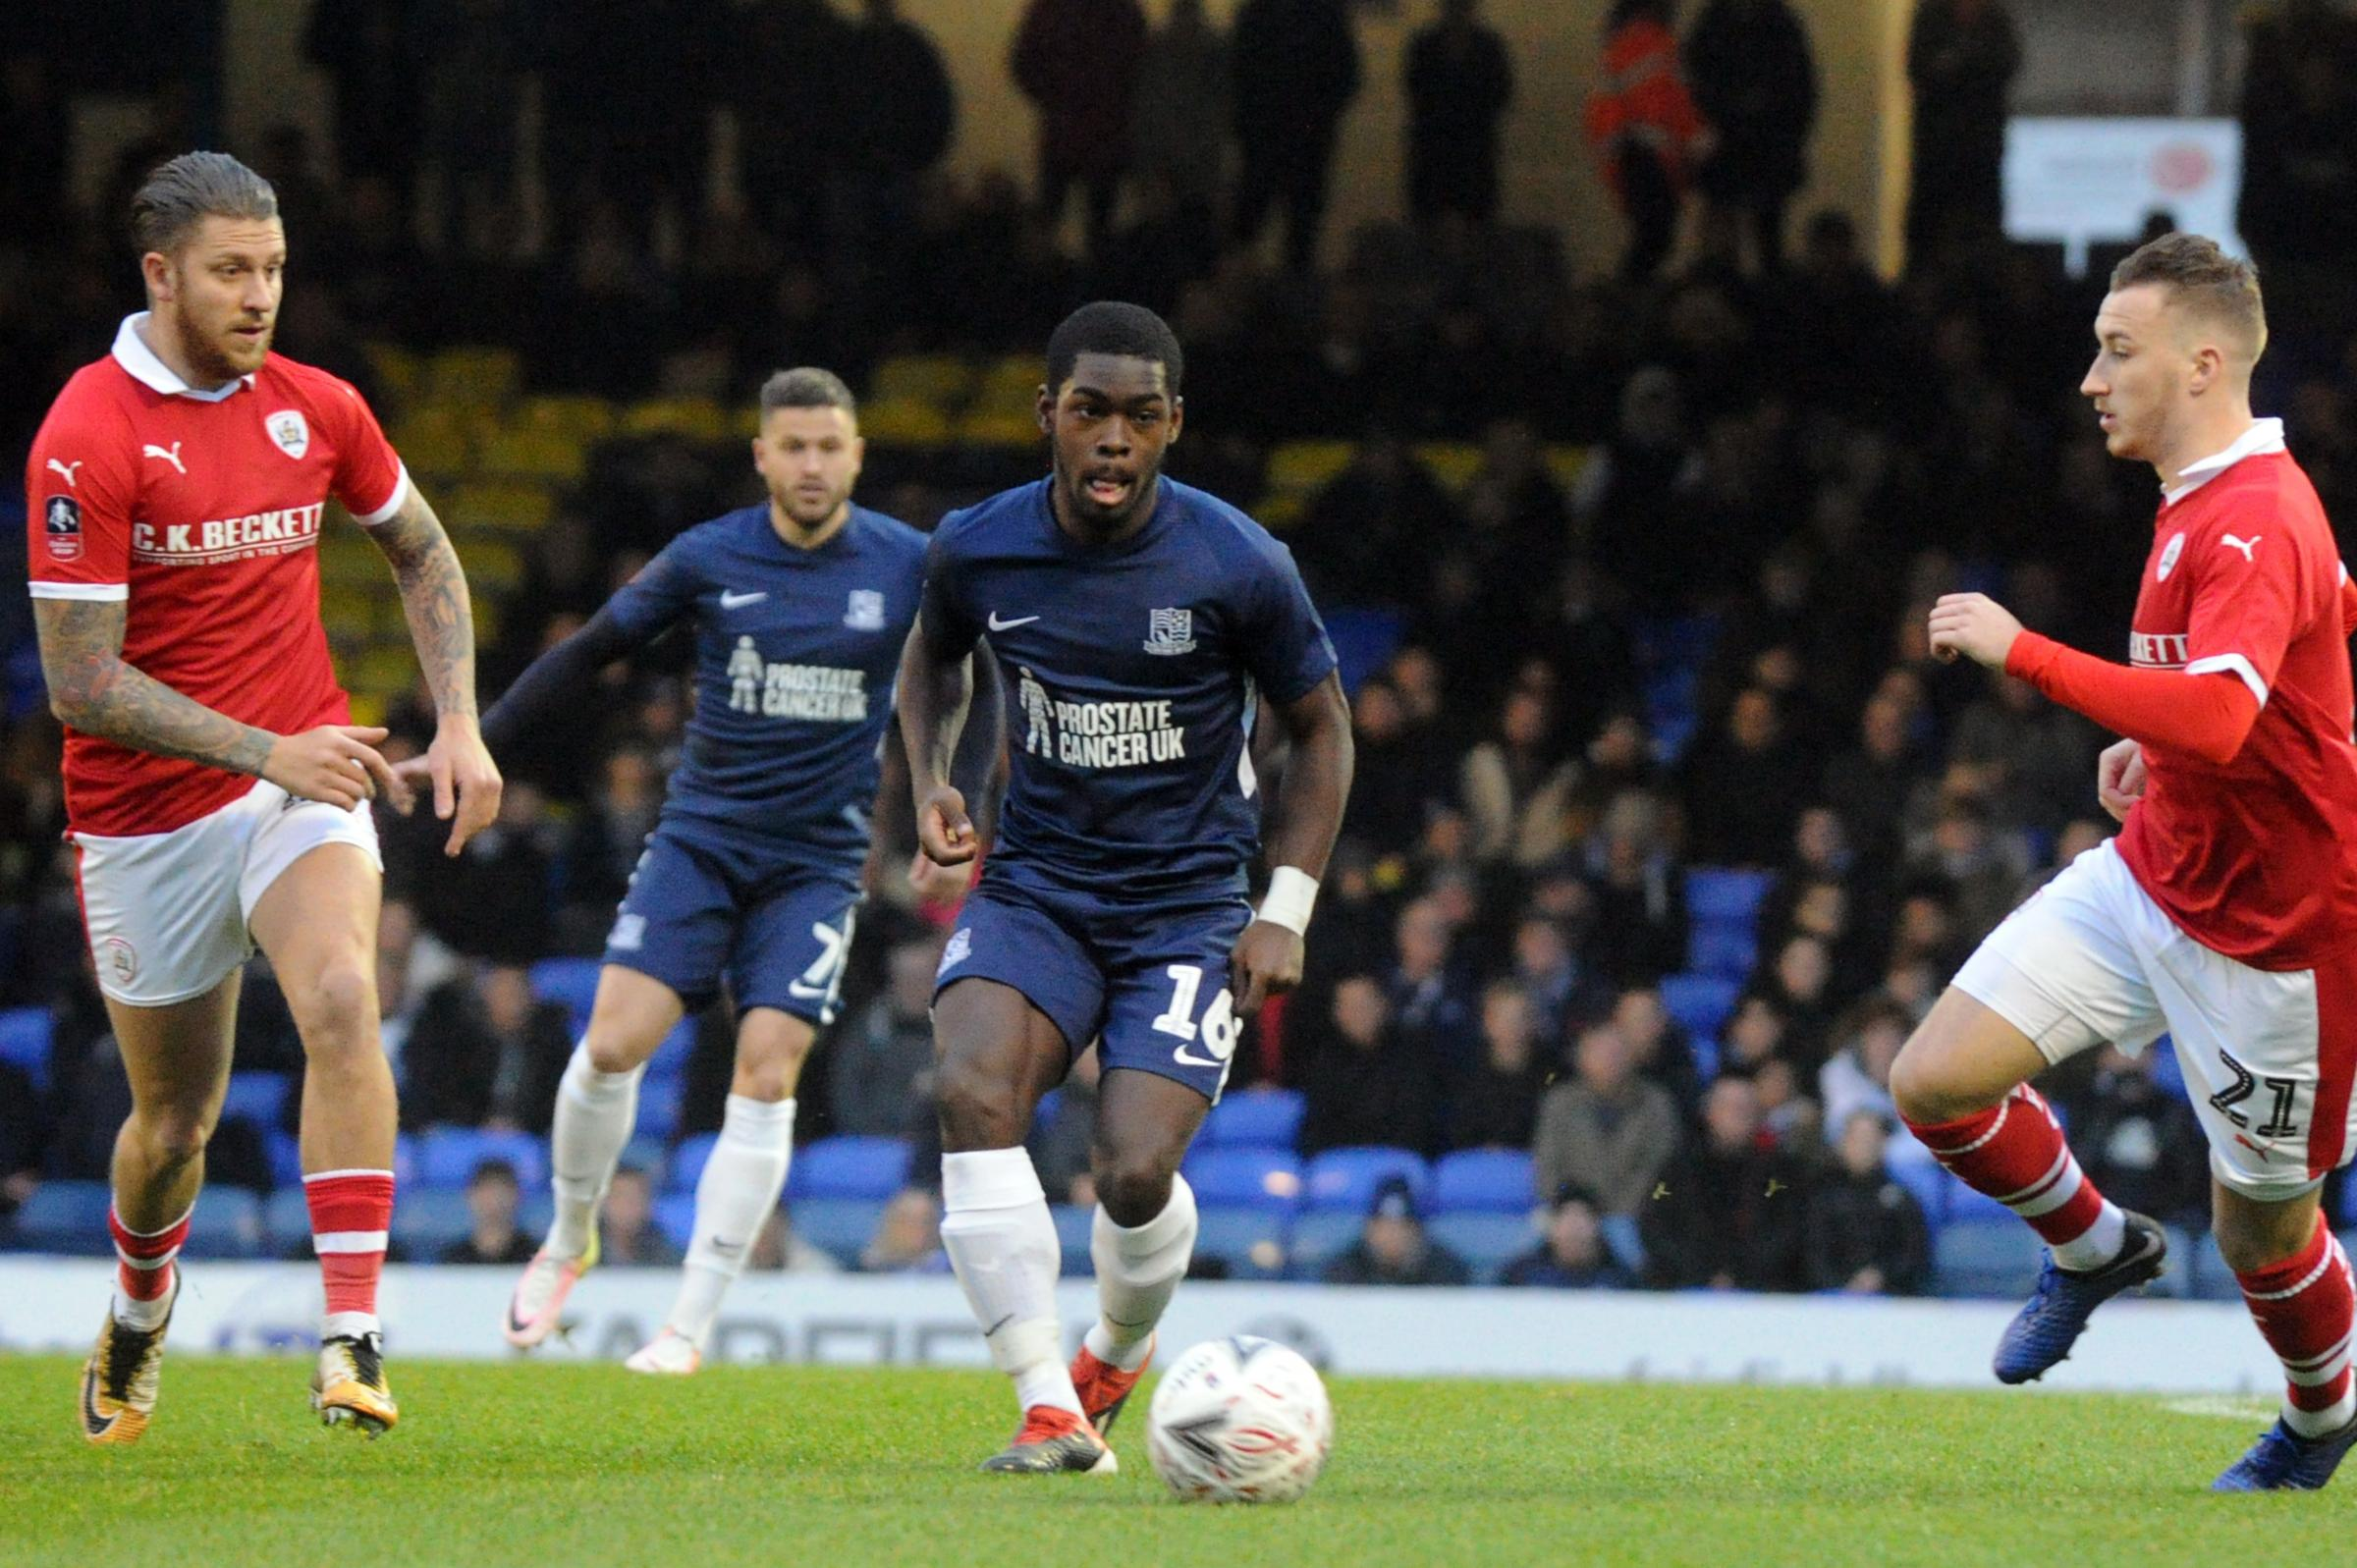 Frustrated - Southend United midfielder Dru Yearwood